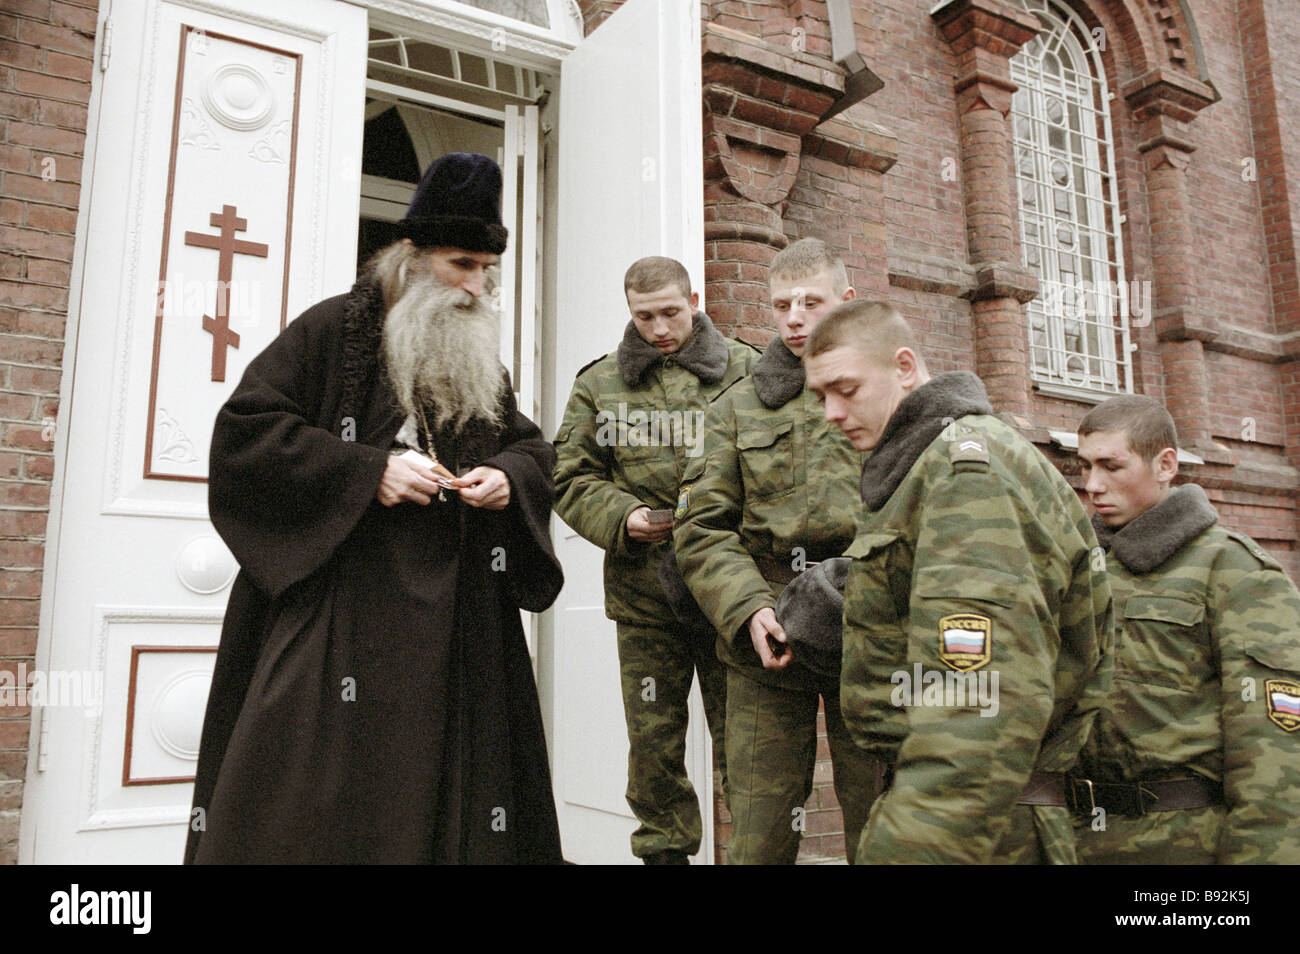 Oleg Teor dean of Alexander Nevsky Cathedral talking to paratroopers - Stock Image